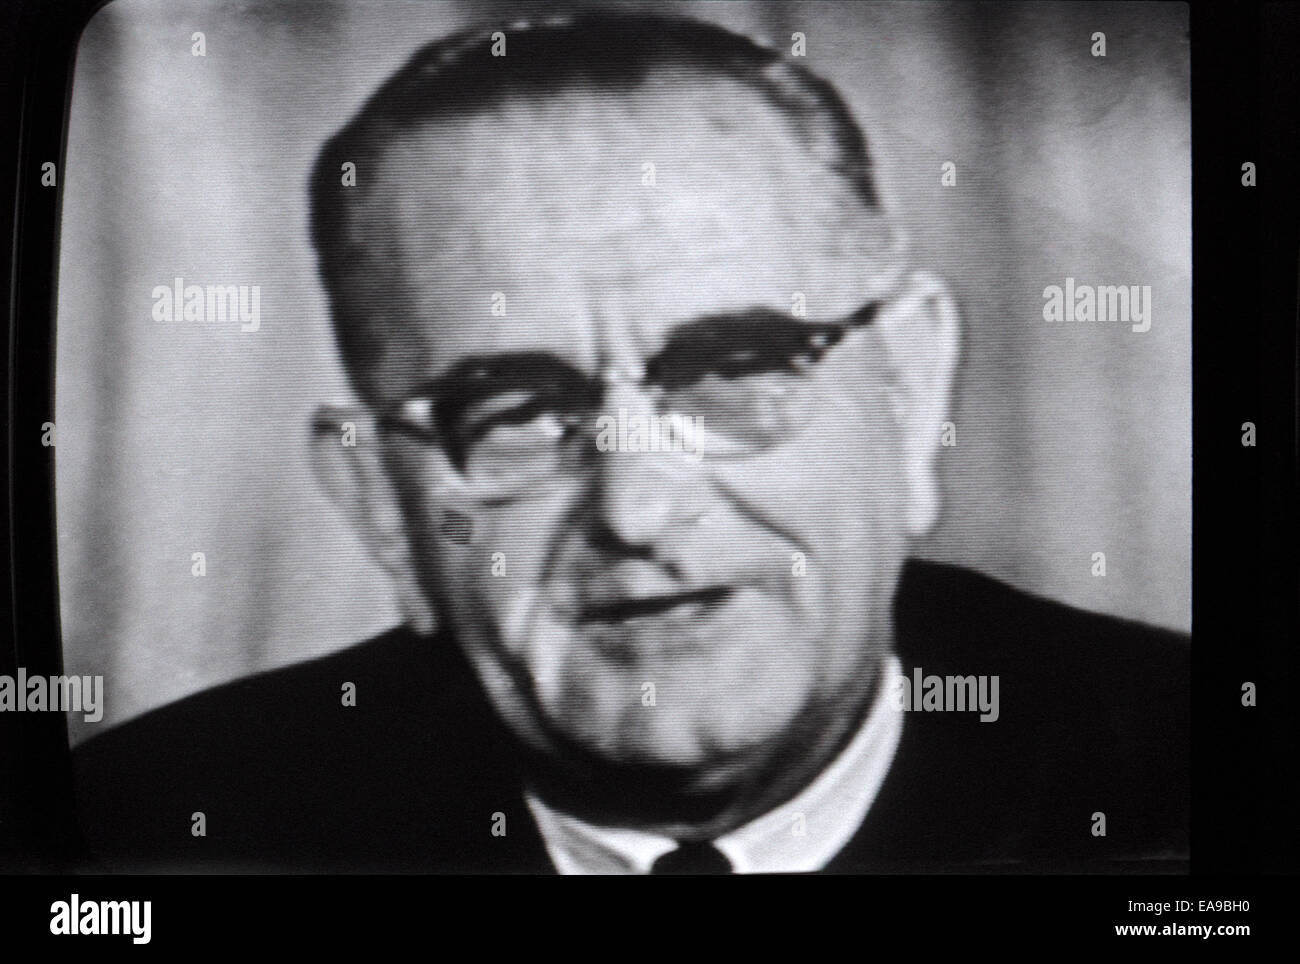 Former President Johnson LBJ photographed live on the television TV  in Los Angeles  20 July 1969 during moon landing Stock Photo